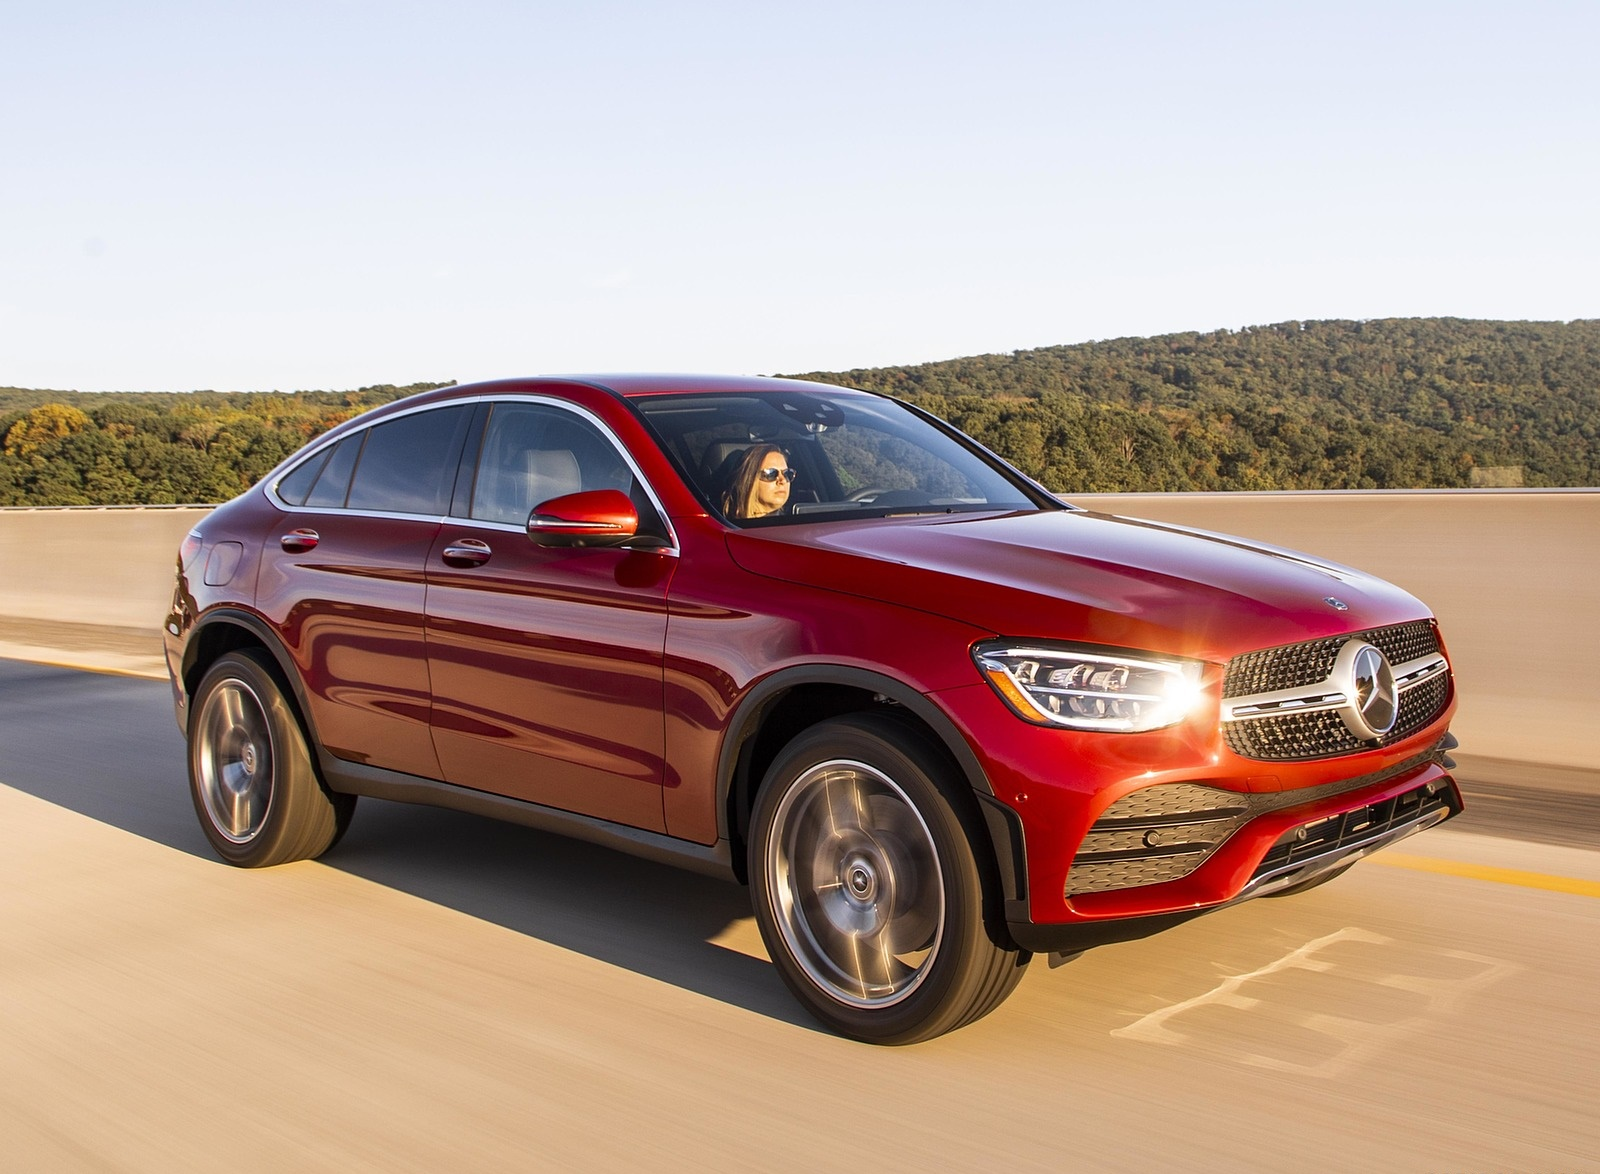 2020 Mercedes-Benz GLC 300 Coupe (US-Spec) Front Three-Quarter Wallpapers (4)